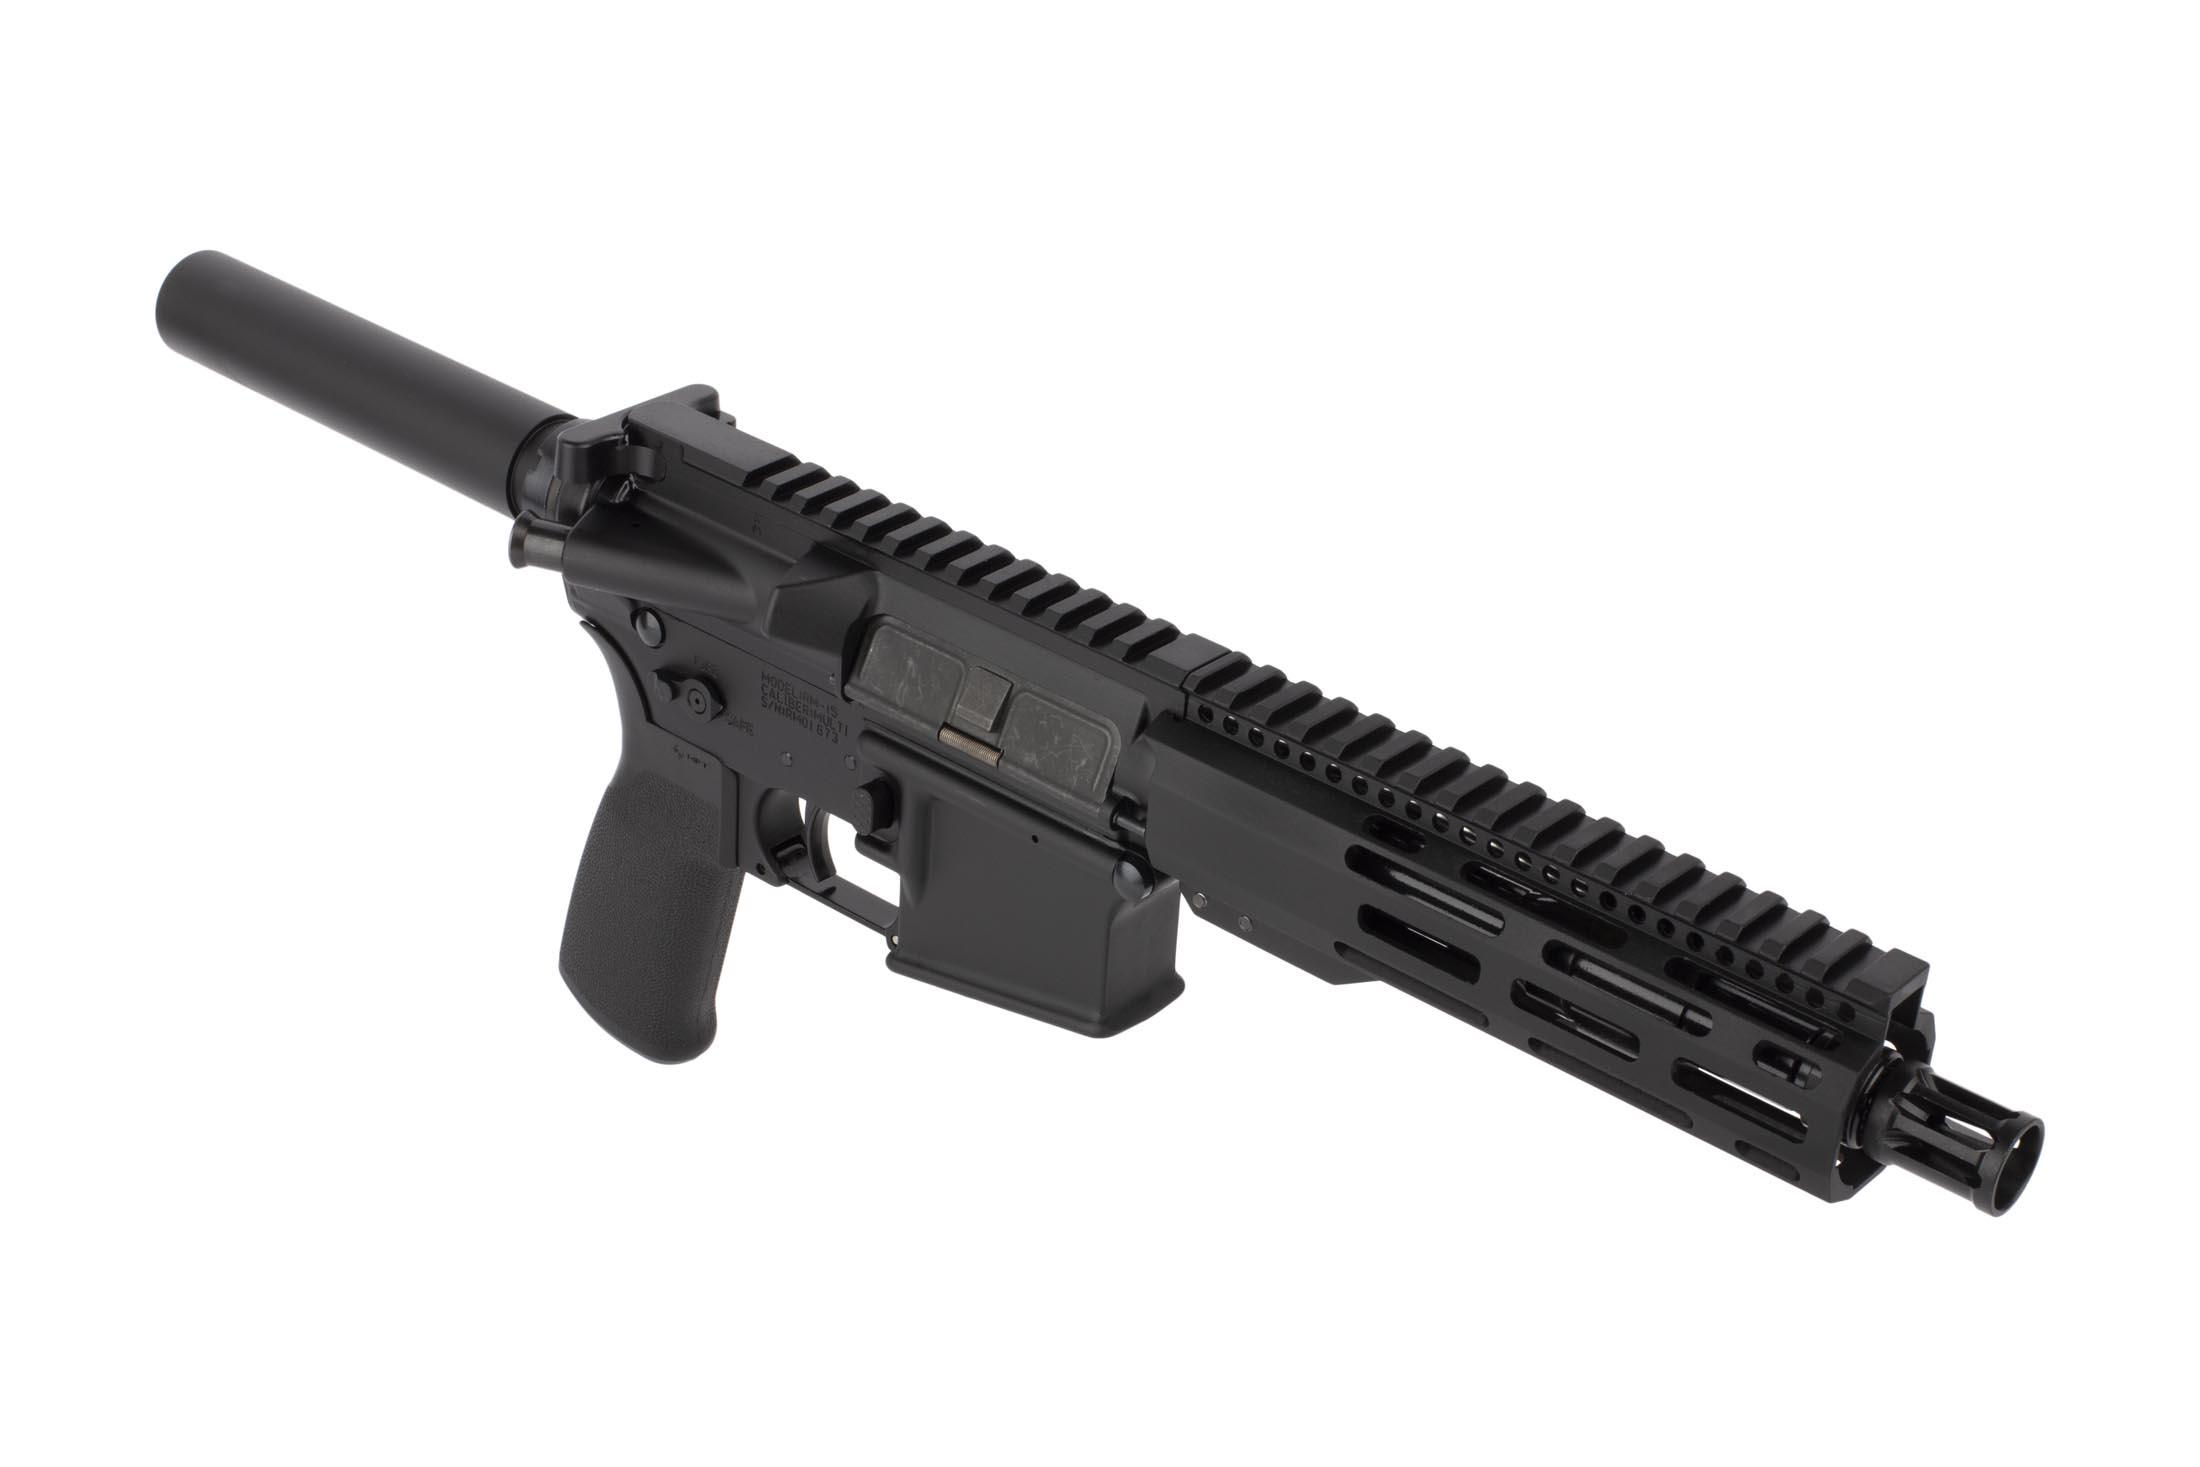 Radical Firearms 7.5in 5.56 NATO AR-15 pistol features a lightweight M-LOK handguard and effective Panzer brake